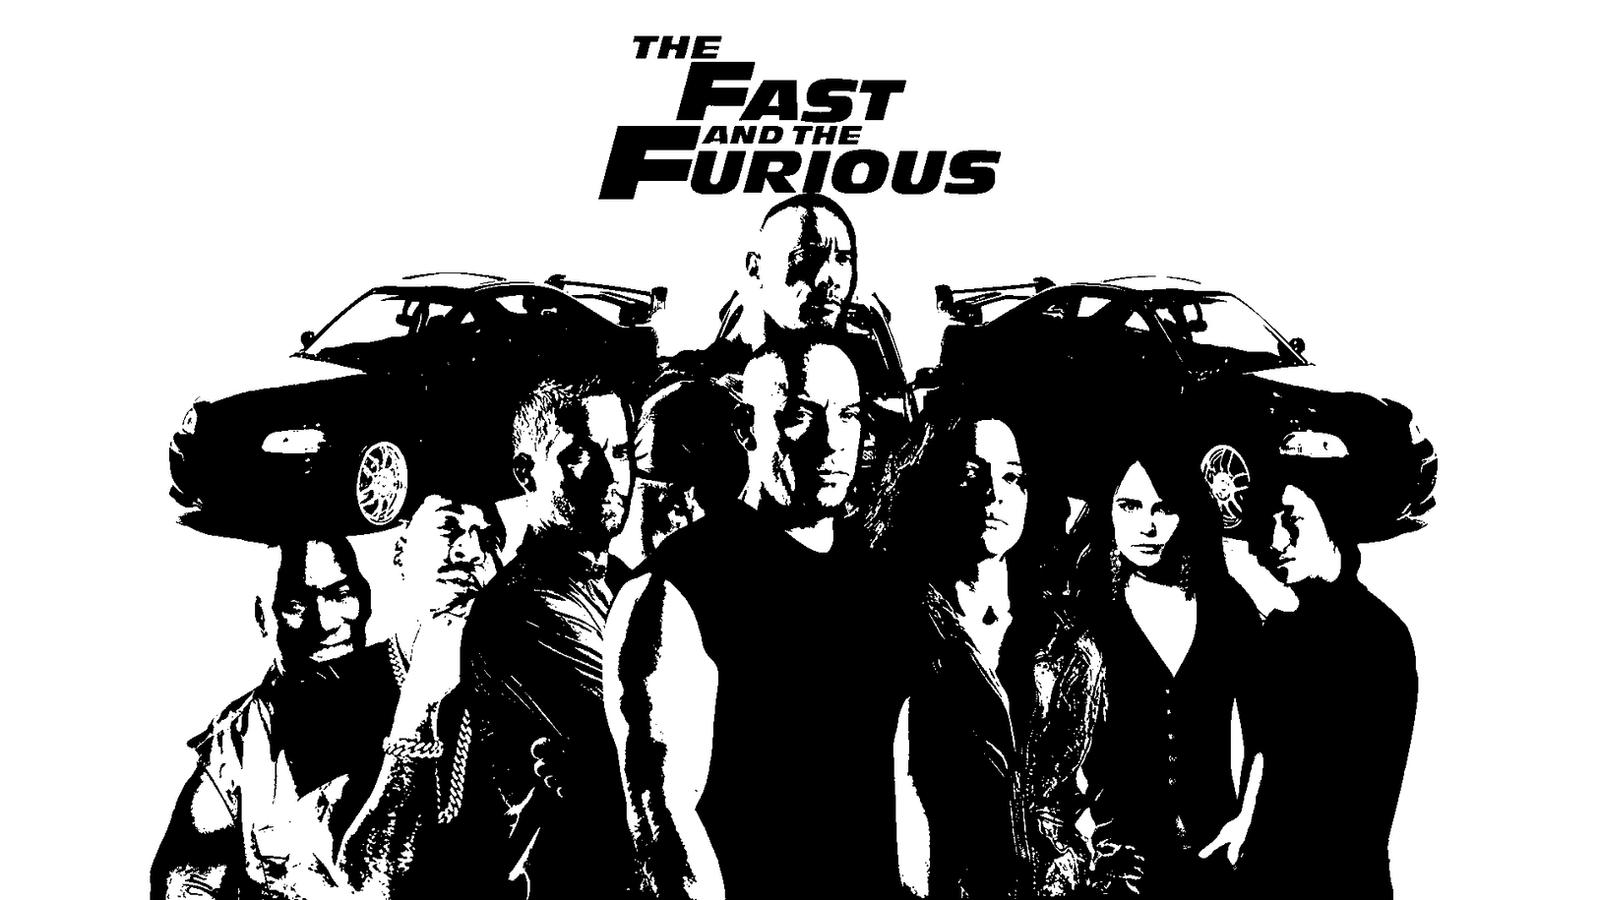 fast and furious 7 wallpaper for desktop